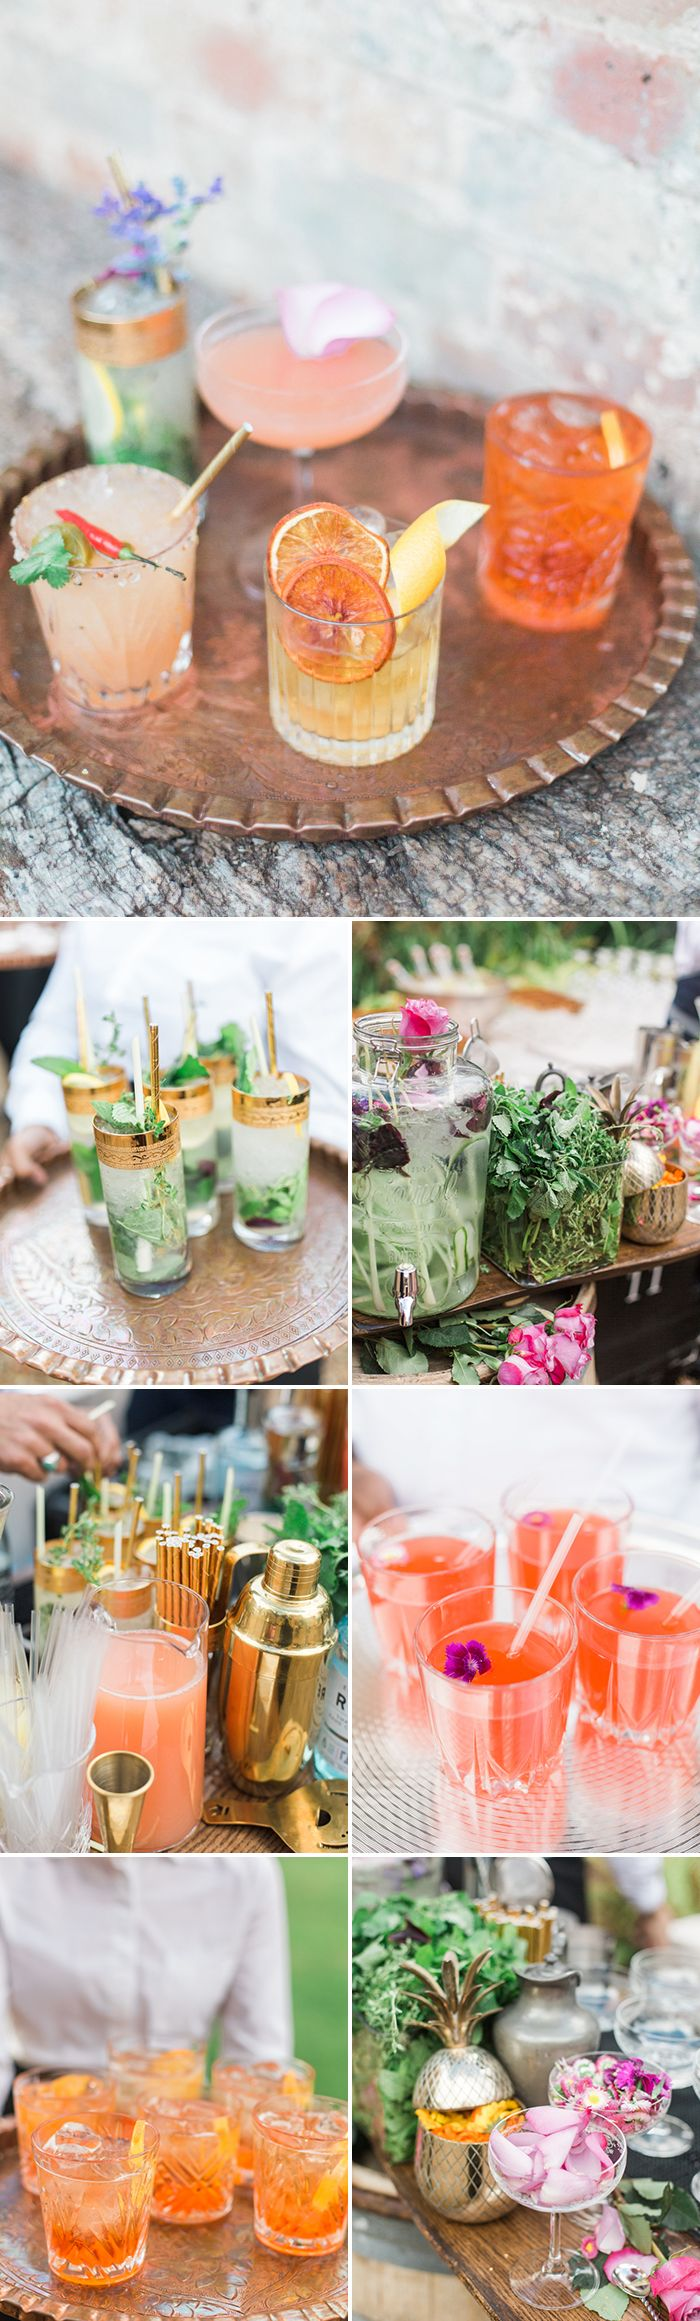 Unique and visually stunning wedding cocktails   Image by Amy Fanton Photography